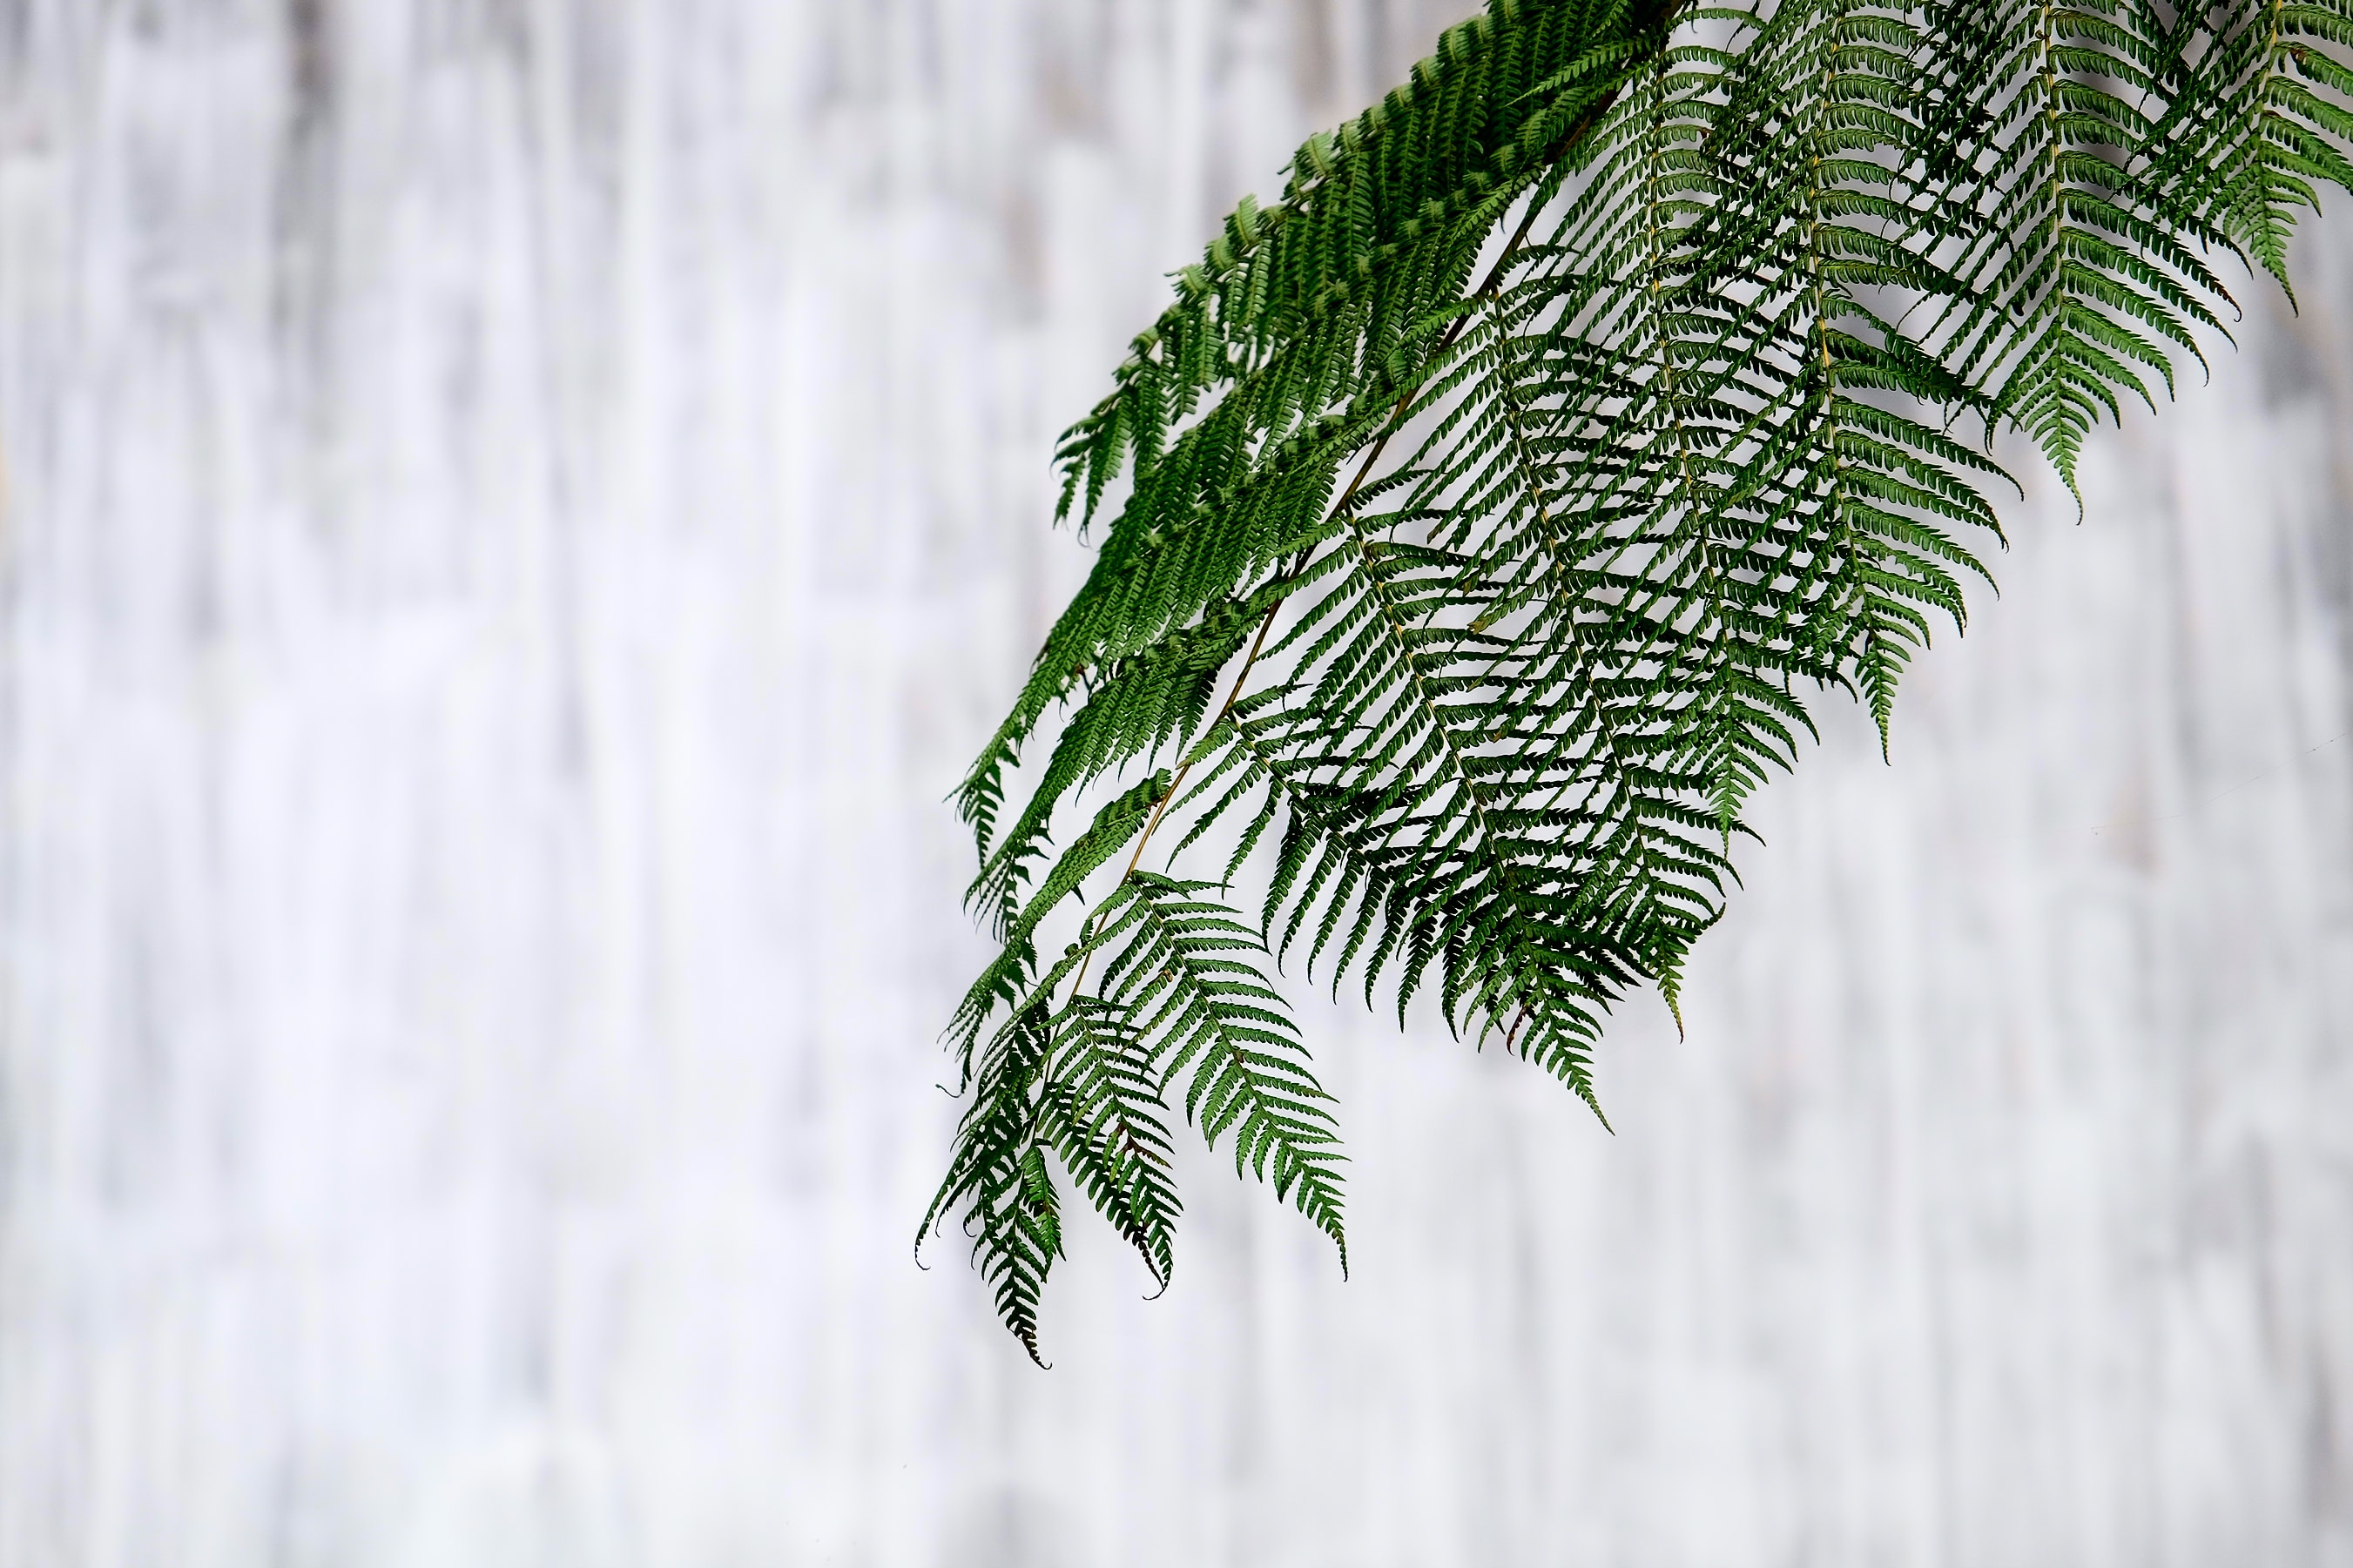 green fern plant closeup photography